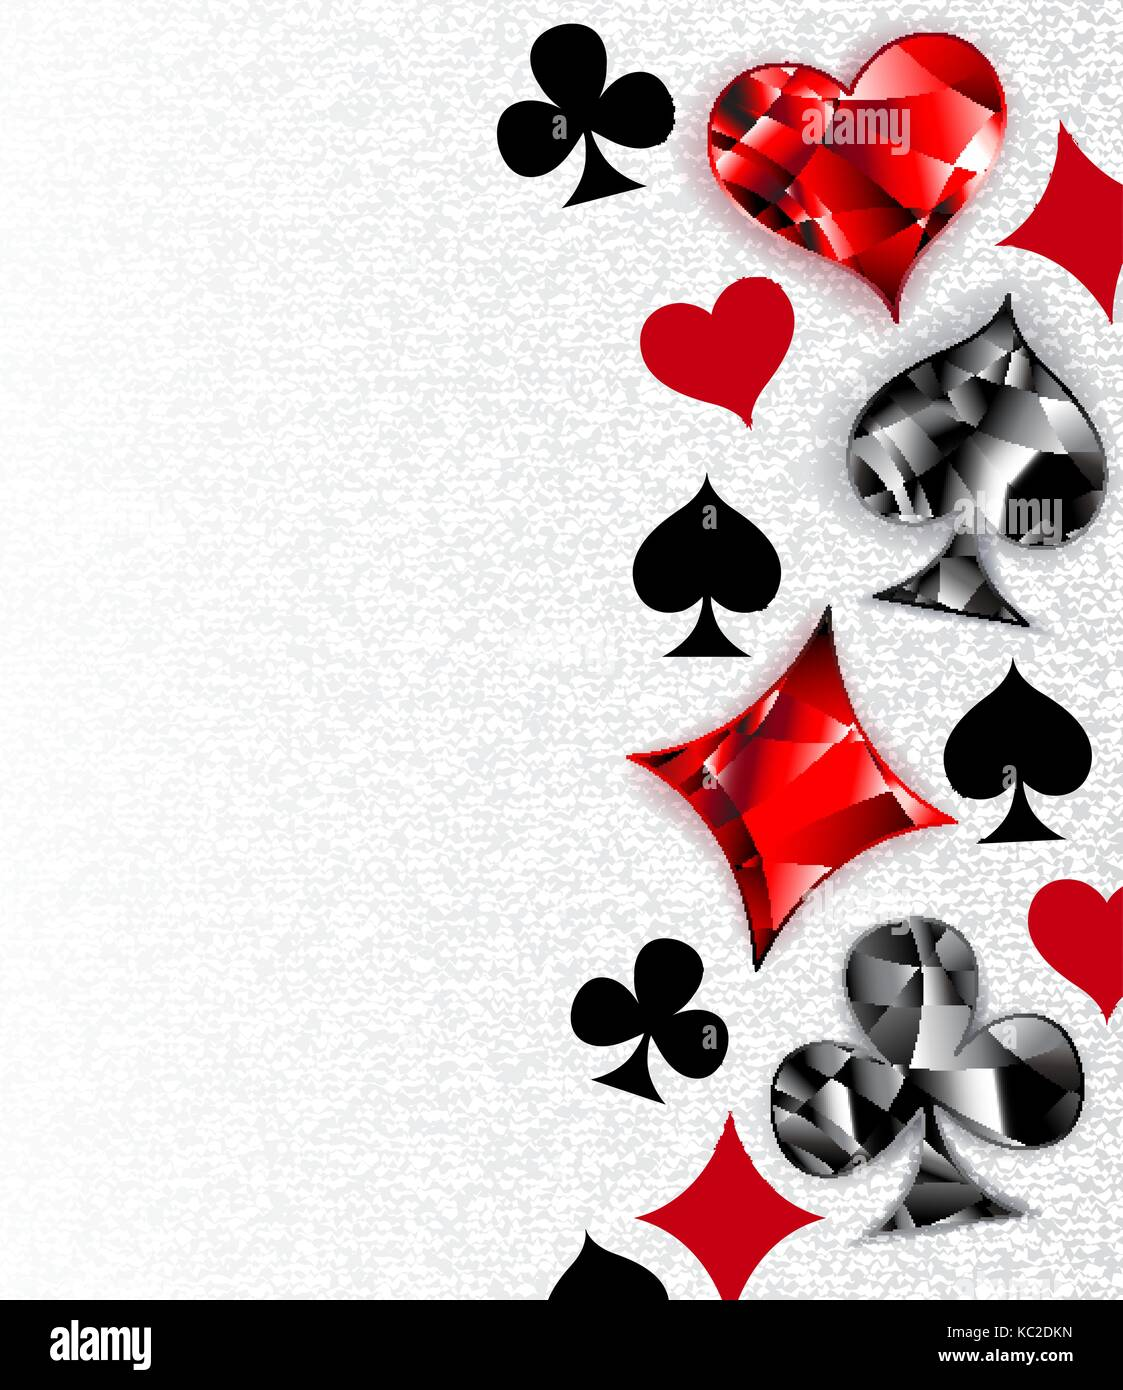 Playing card symbols stock photos playing card symbols stock gray textured background with polygonal playing cards symbols symbols of playing cards heart biocorpaavc